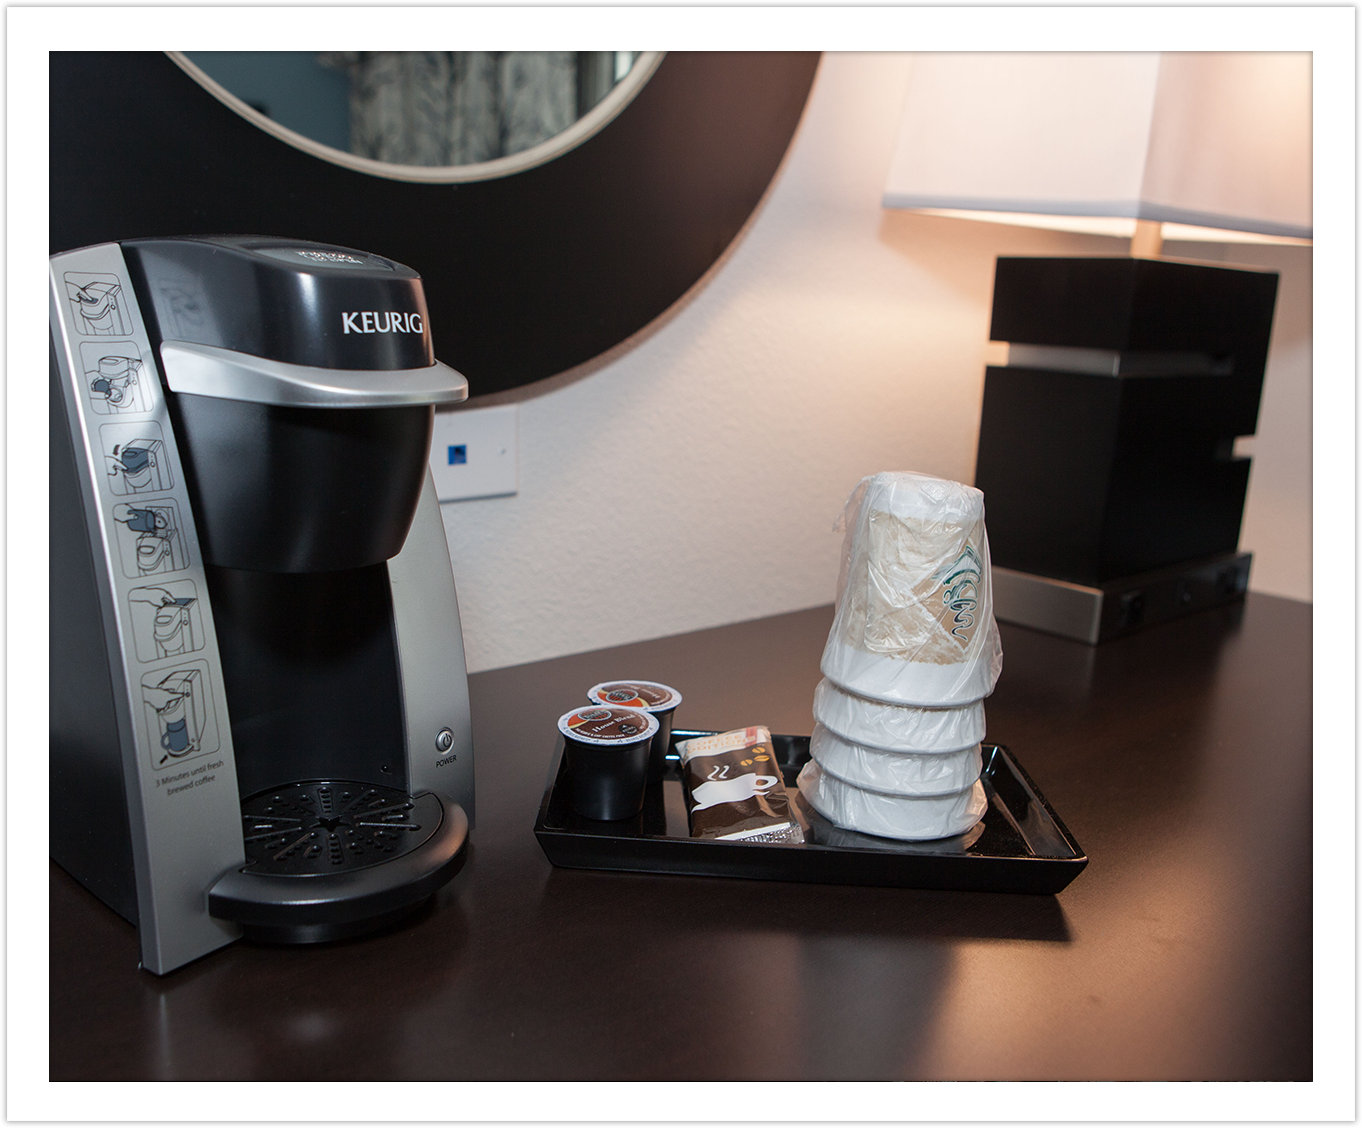 Keurig Coffee Maker at Arbor Hotel & Conference Center